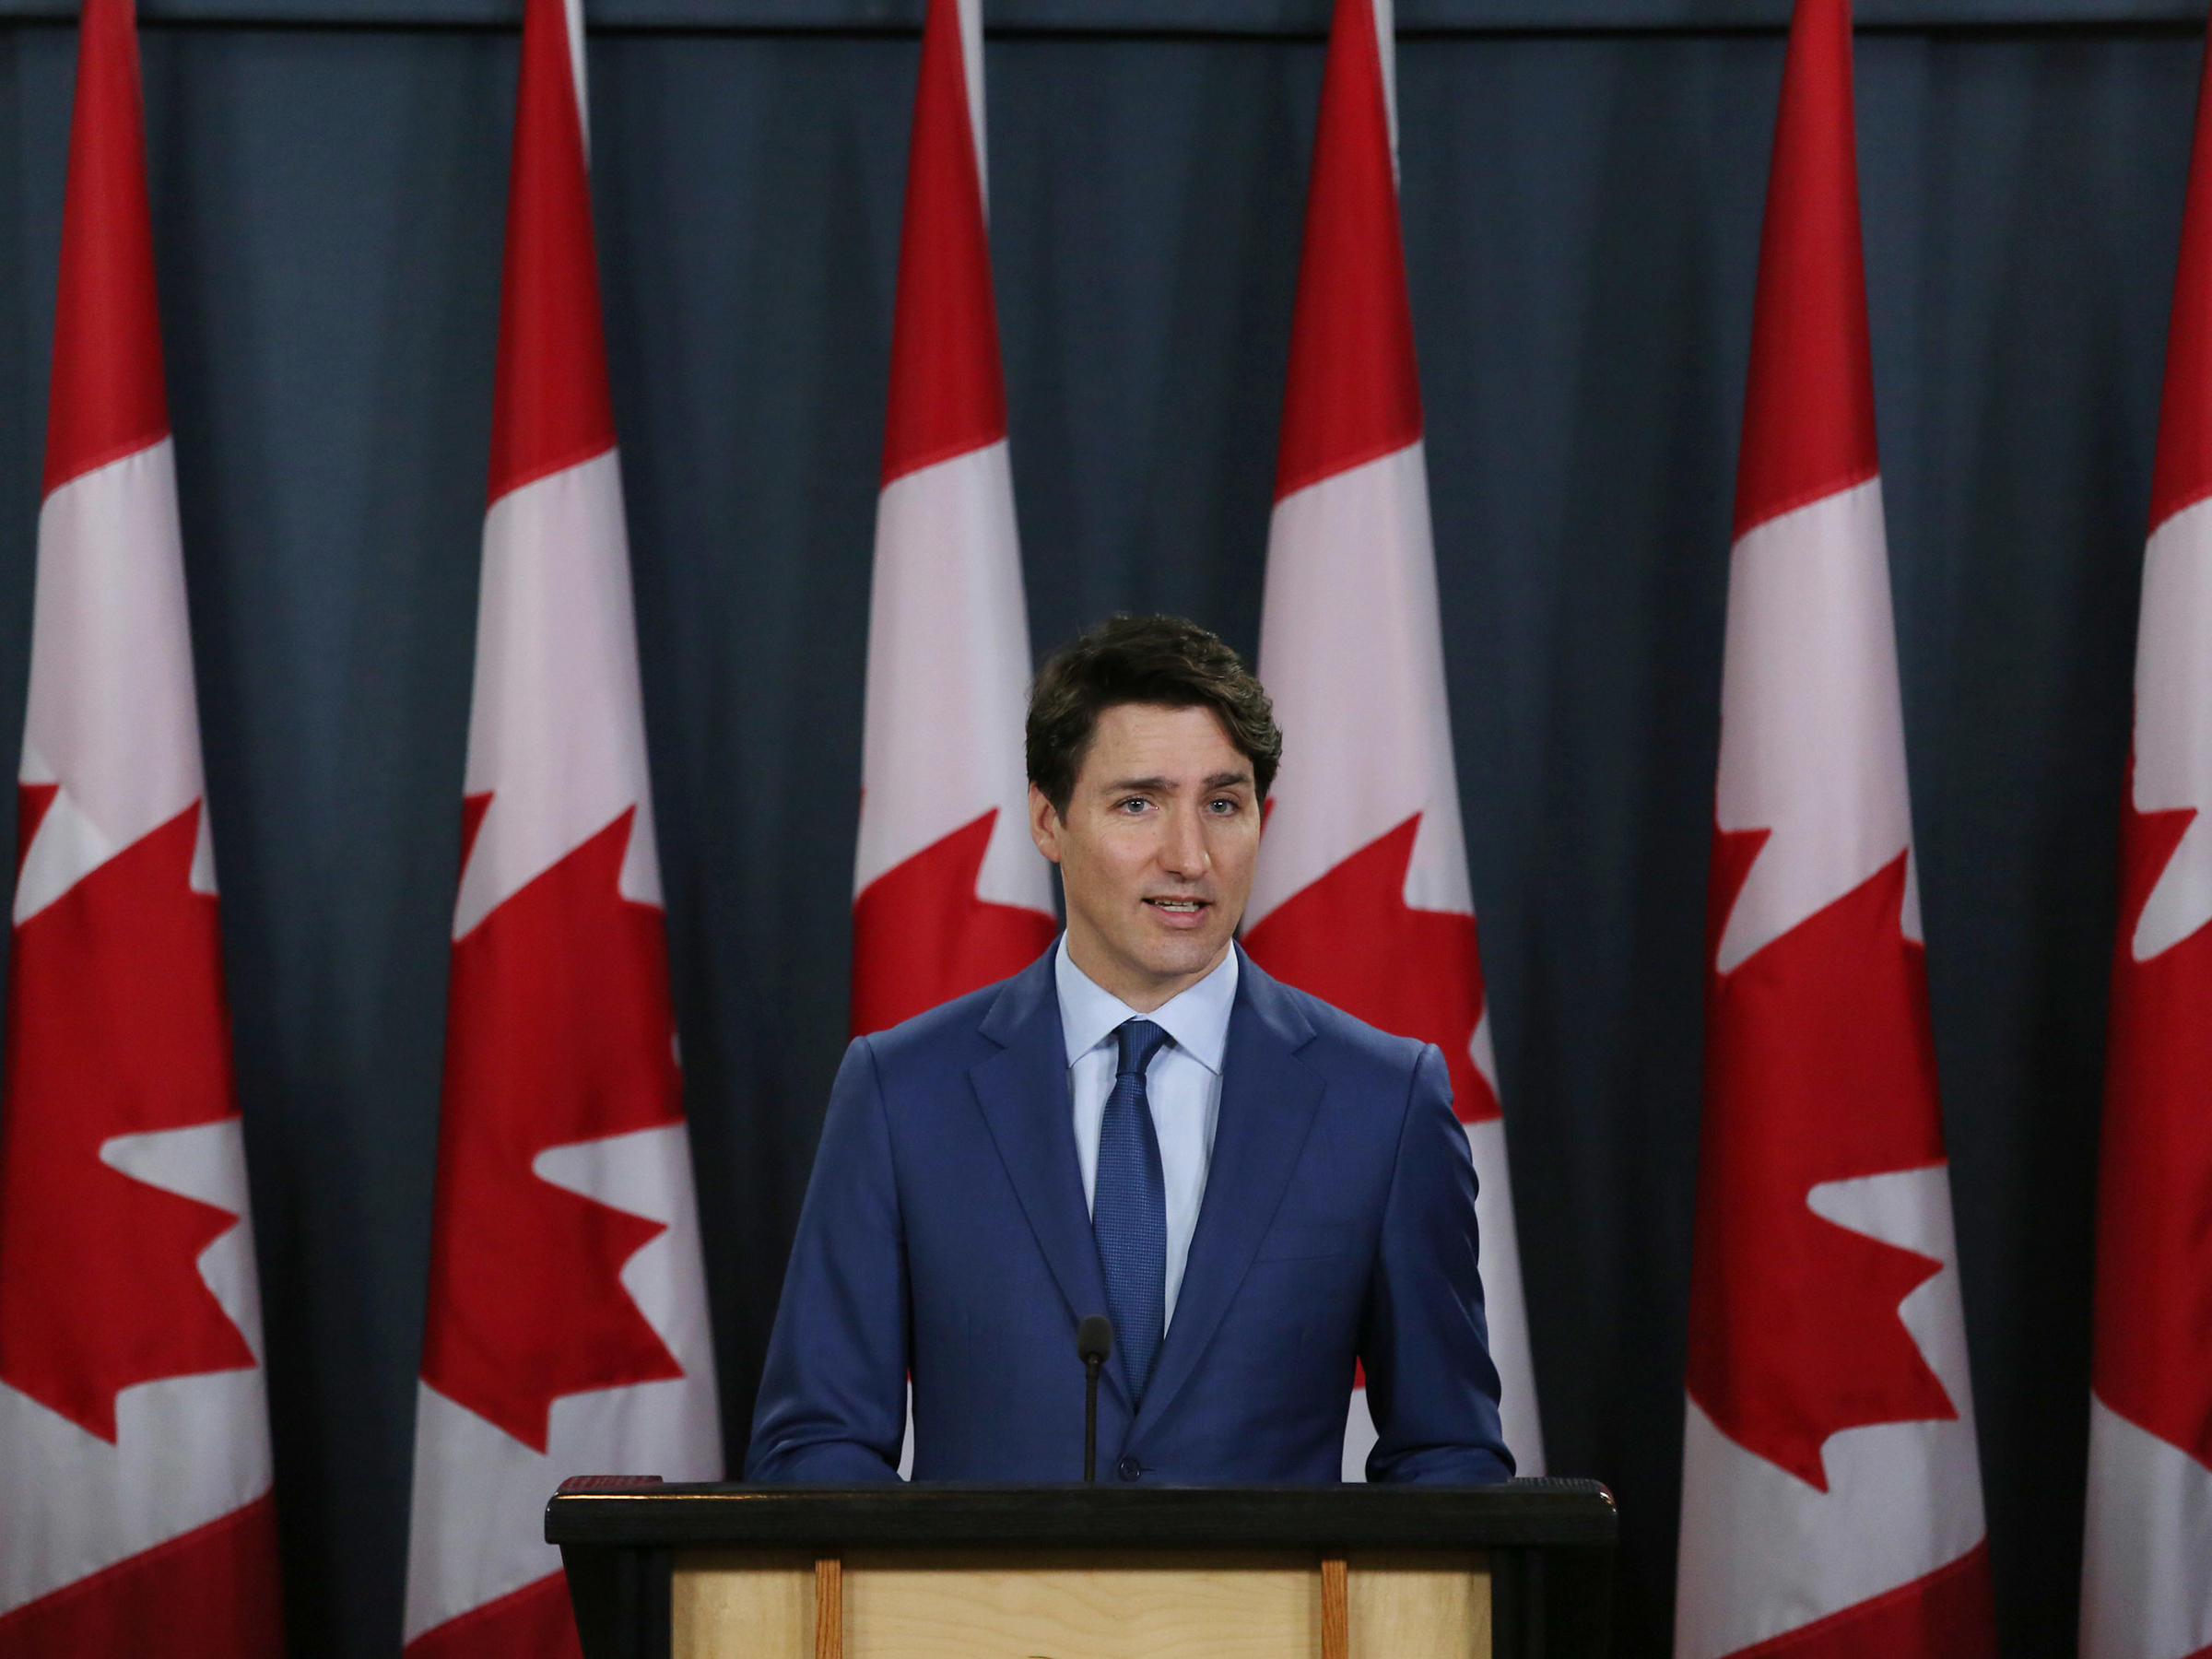 HIGHLIGHTS: Justin Trudeau responds to SNC-Lavalin testimonies